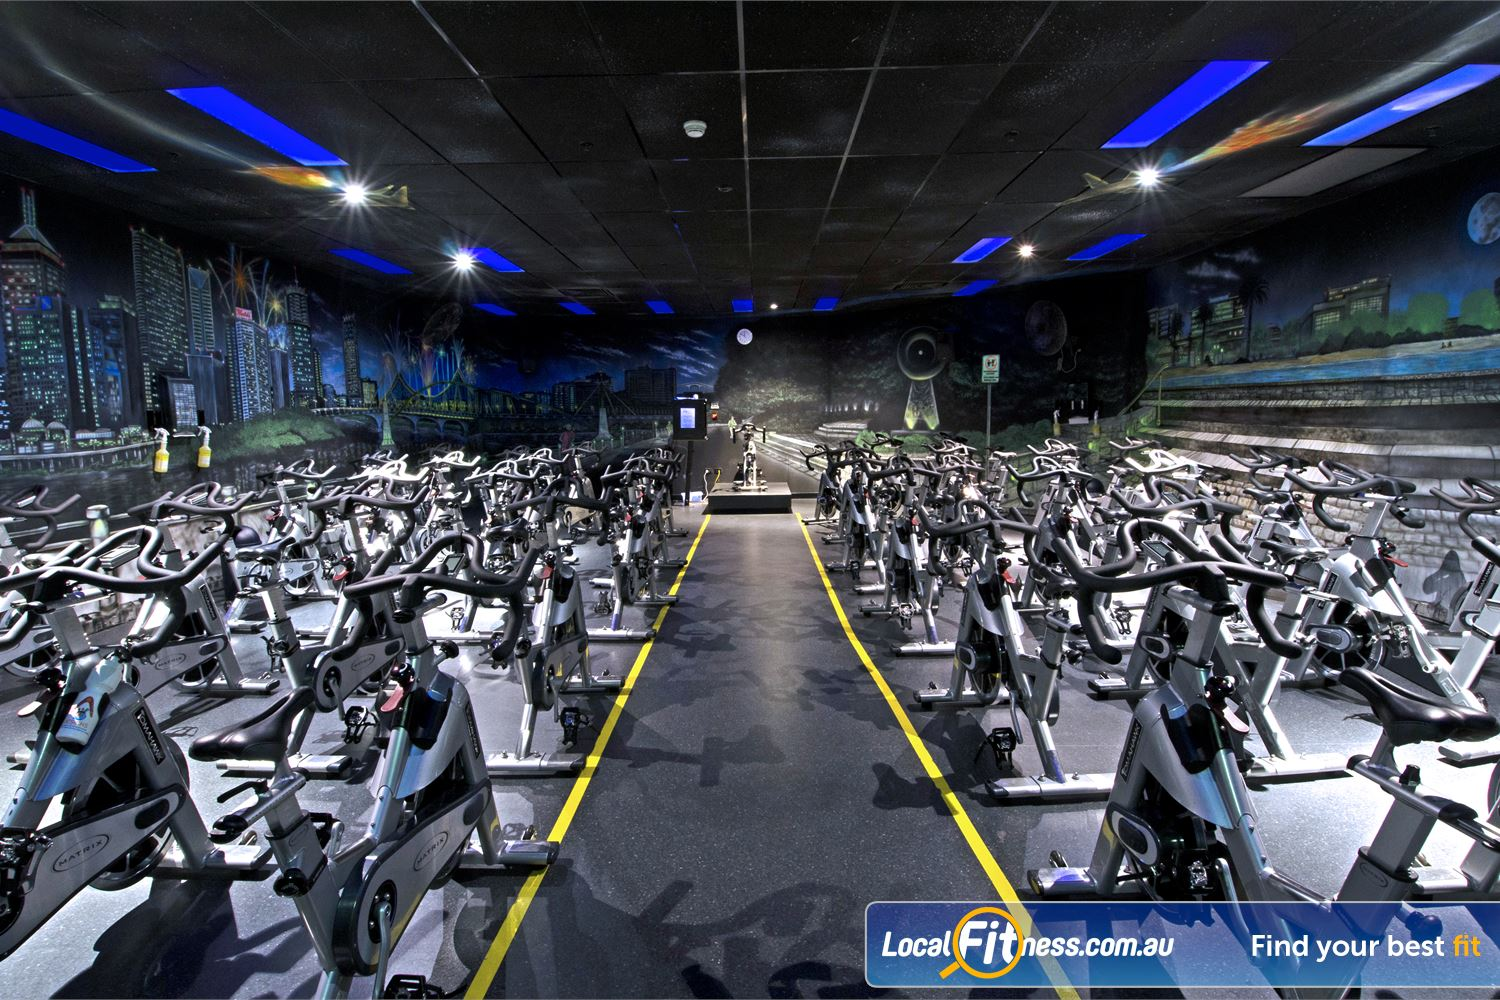 Goodlife Health Clubs Chermside Dedicated Chermside spin cycle studio with state of the art Tomahawk cycle bikes.